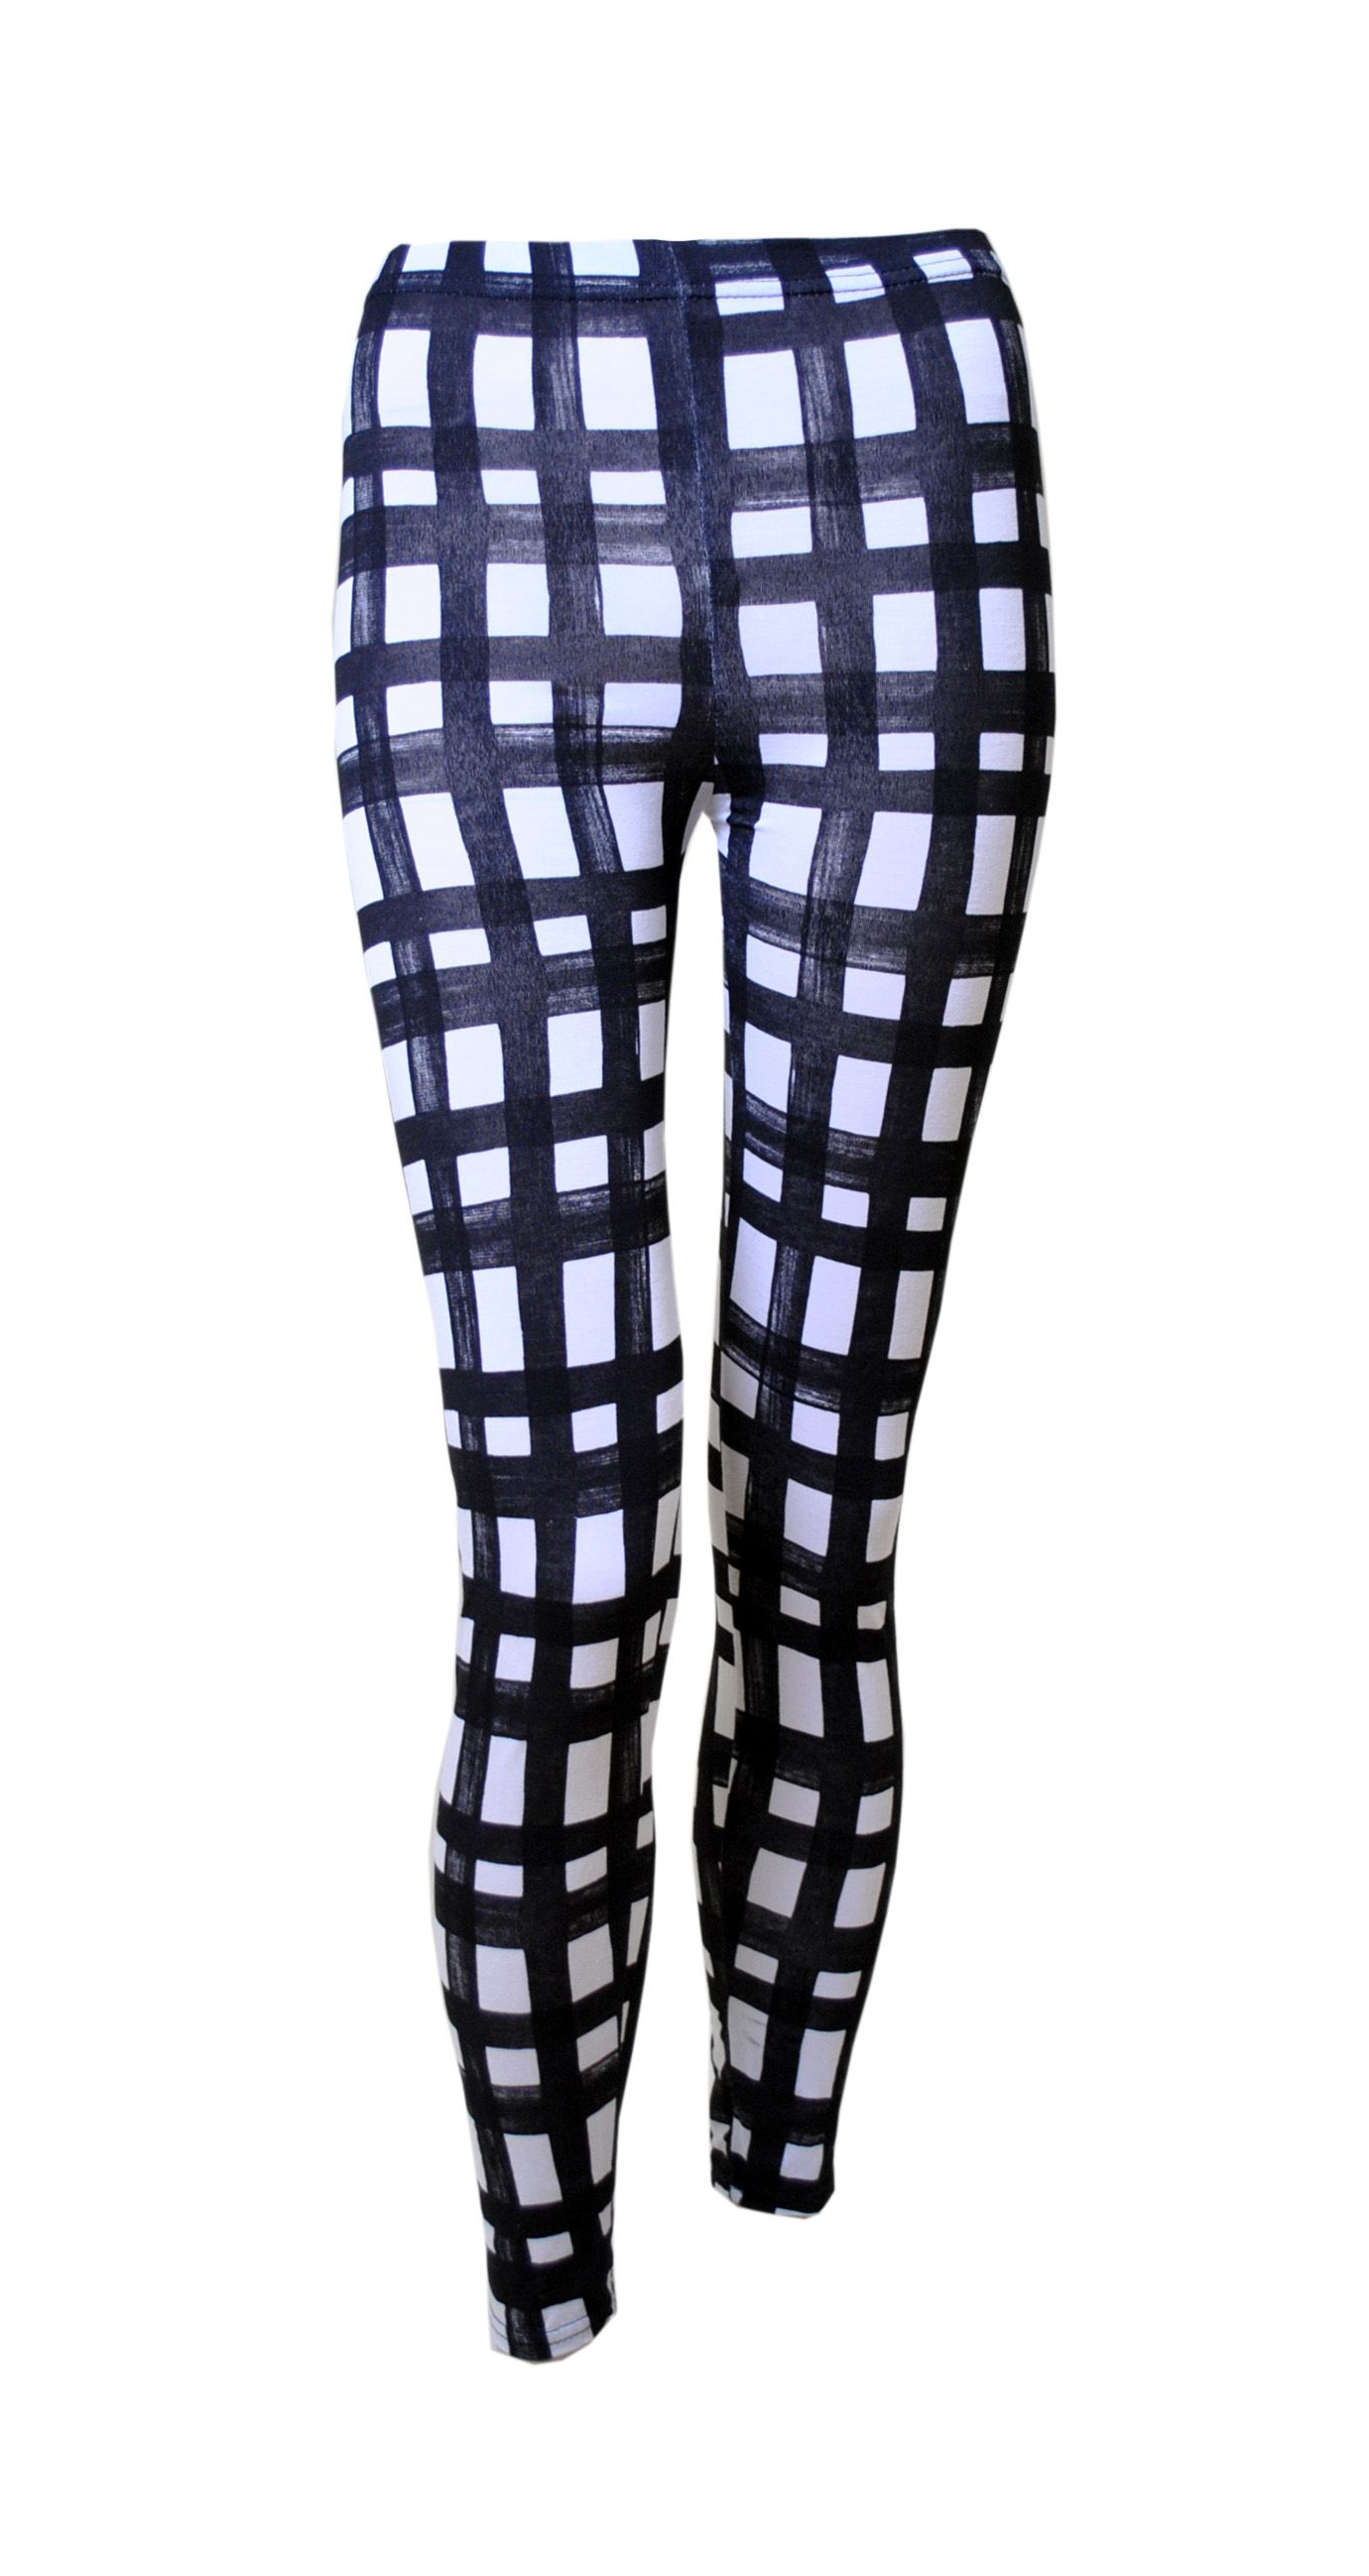 Black u0026 White Distressed Gingham Print Leggings